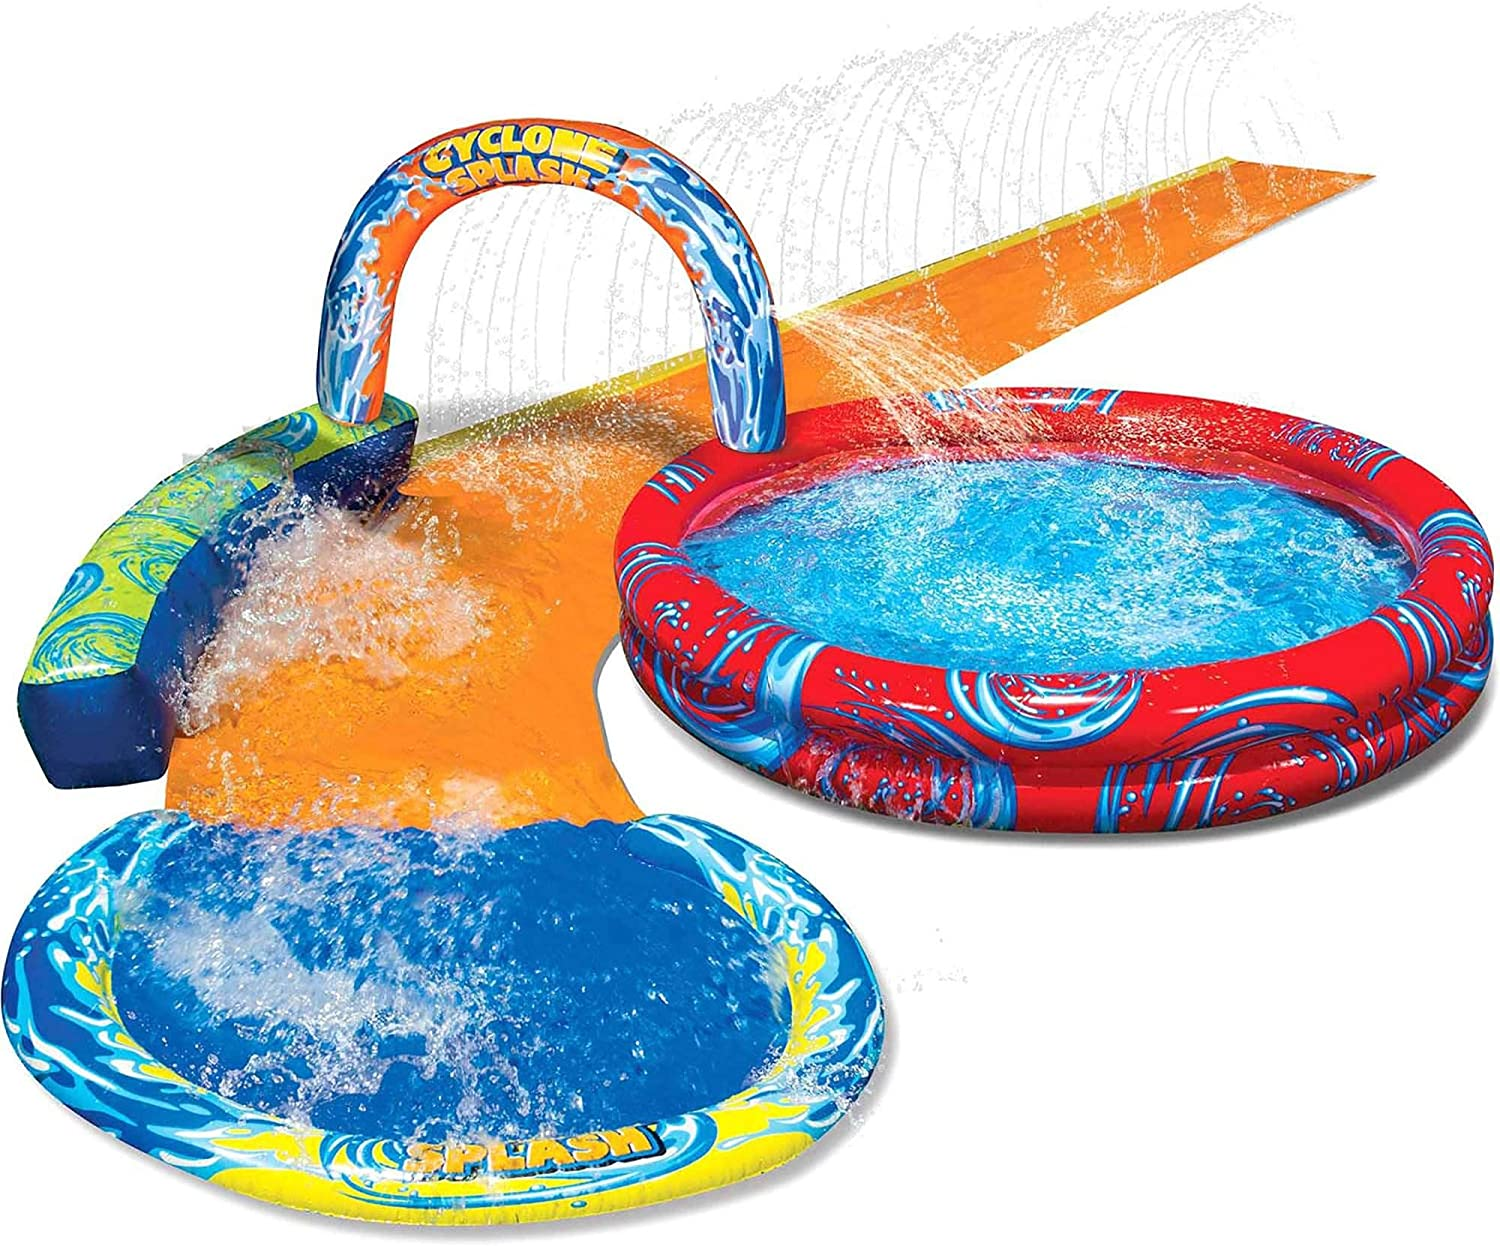 Top 10 Best Slip and Slides in 2020 Reviews